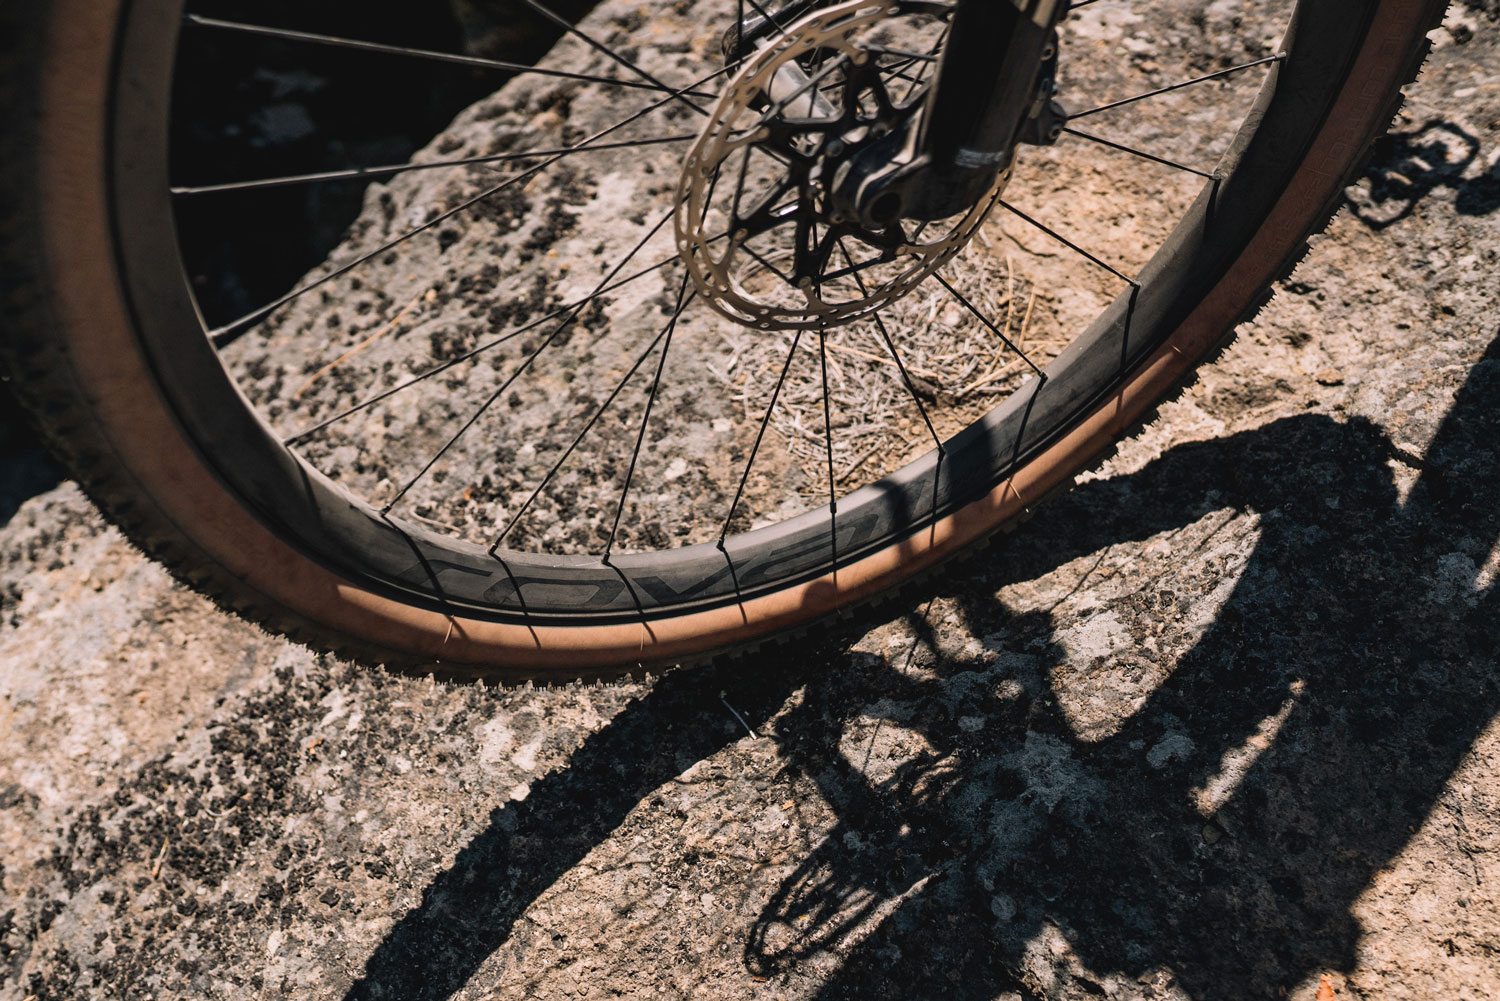 Specialized Epic Evo S-Works spokes and wheel